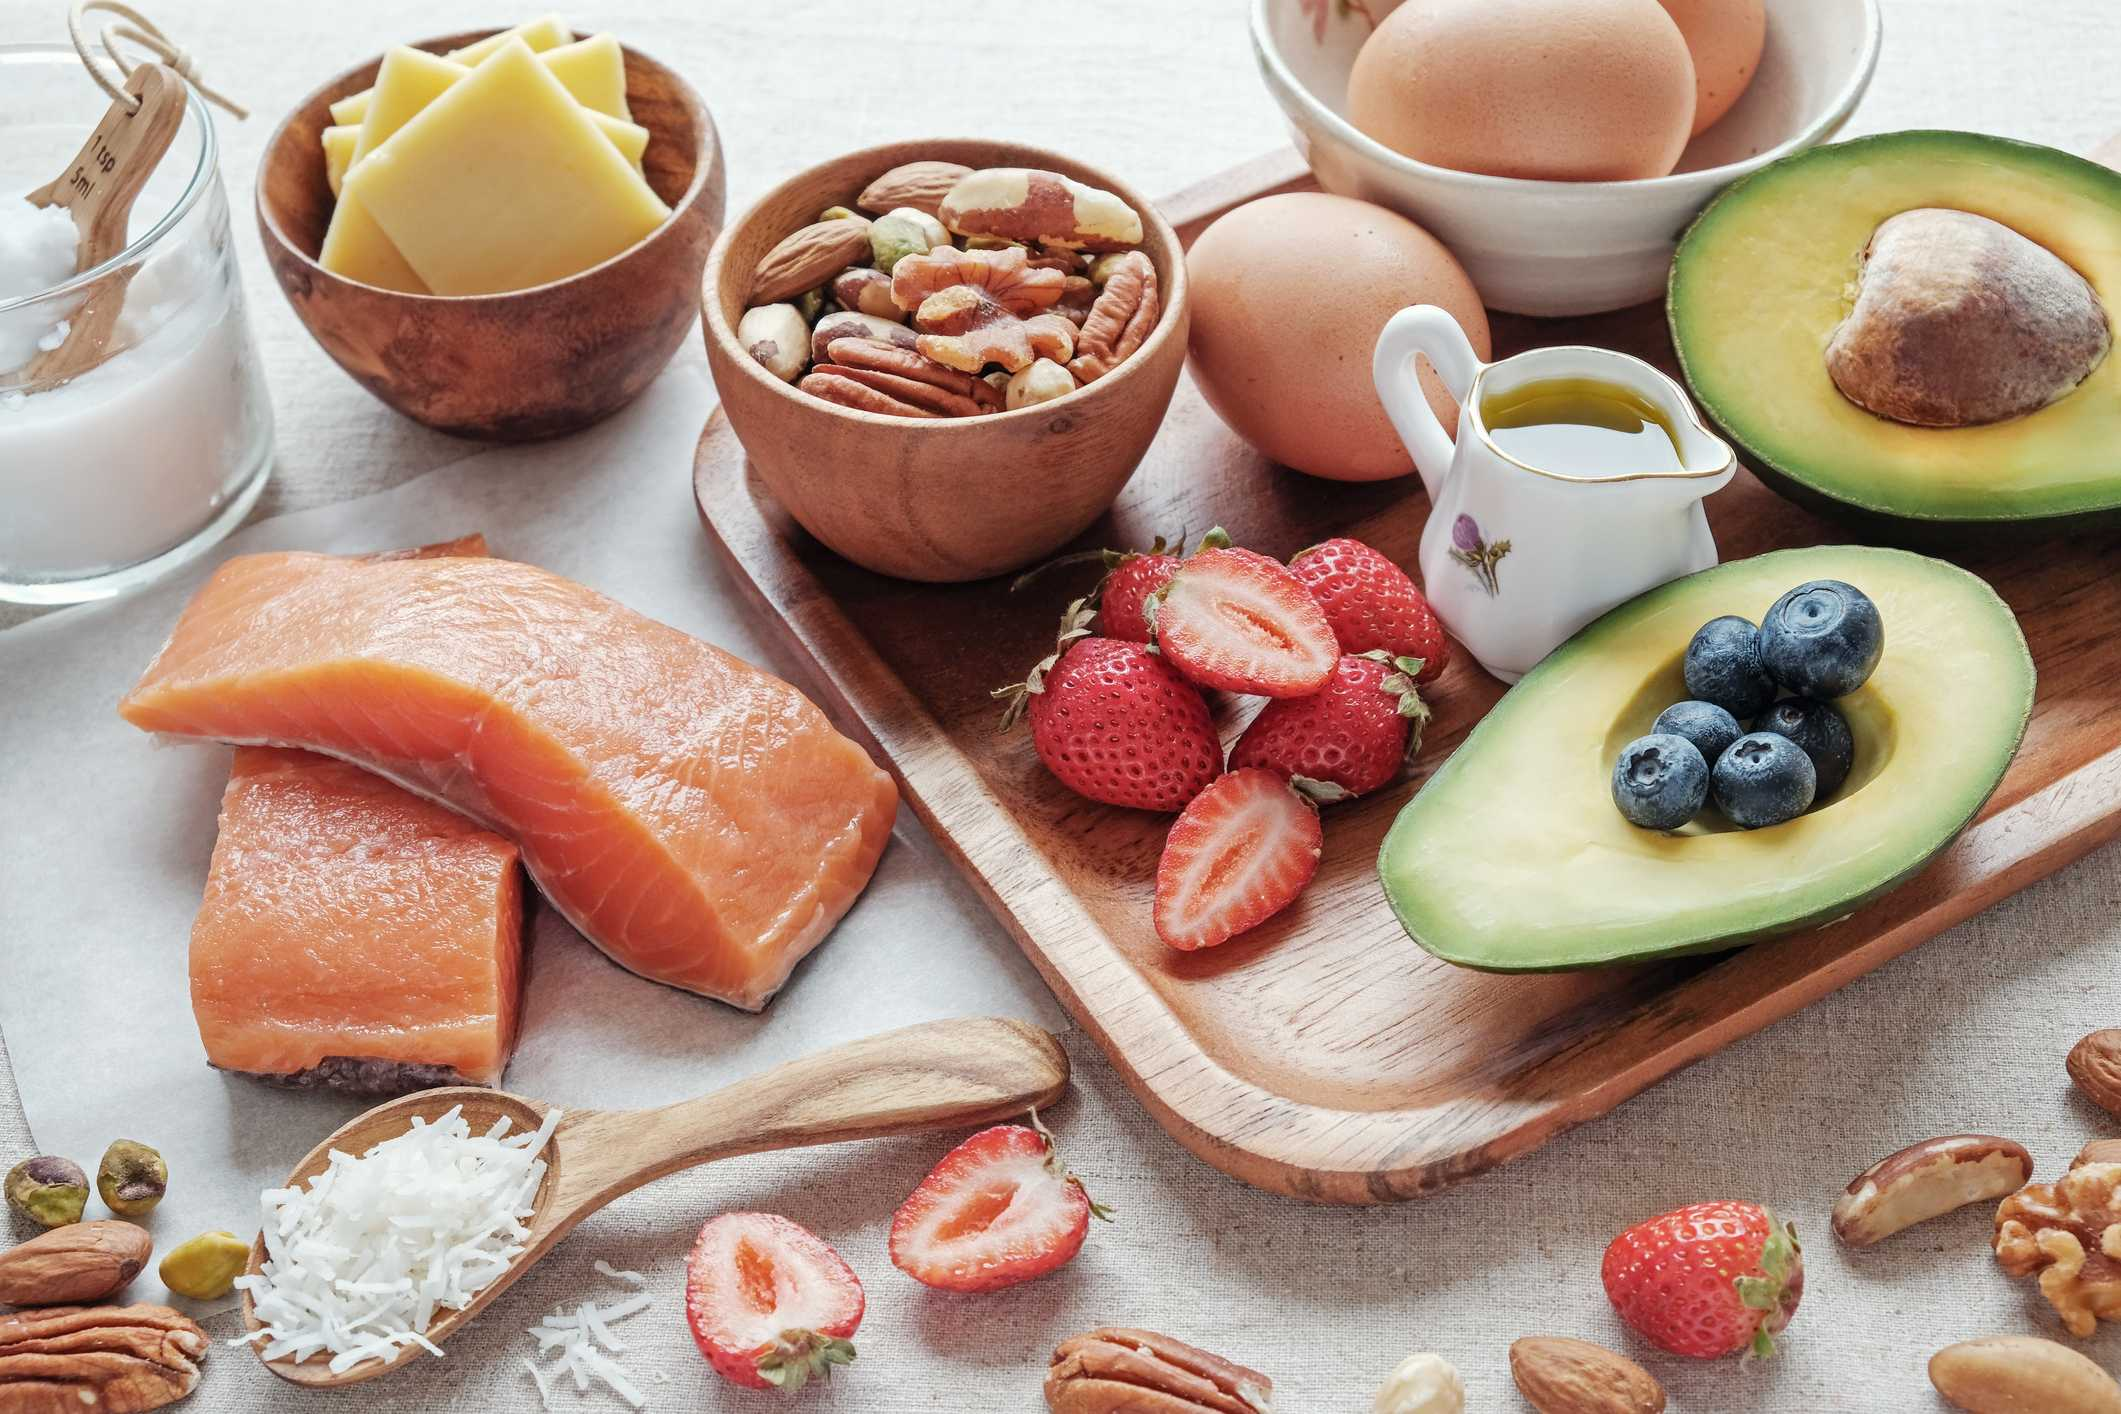 Paleo diet offers wholesome health benefits